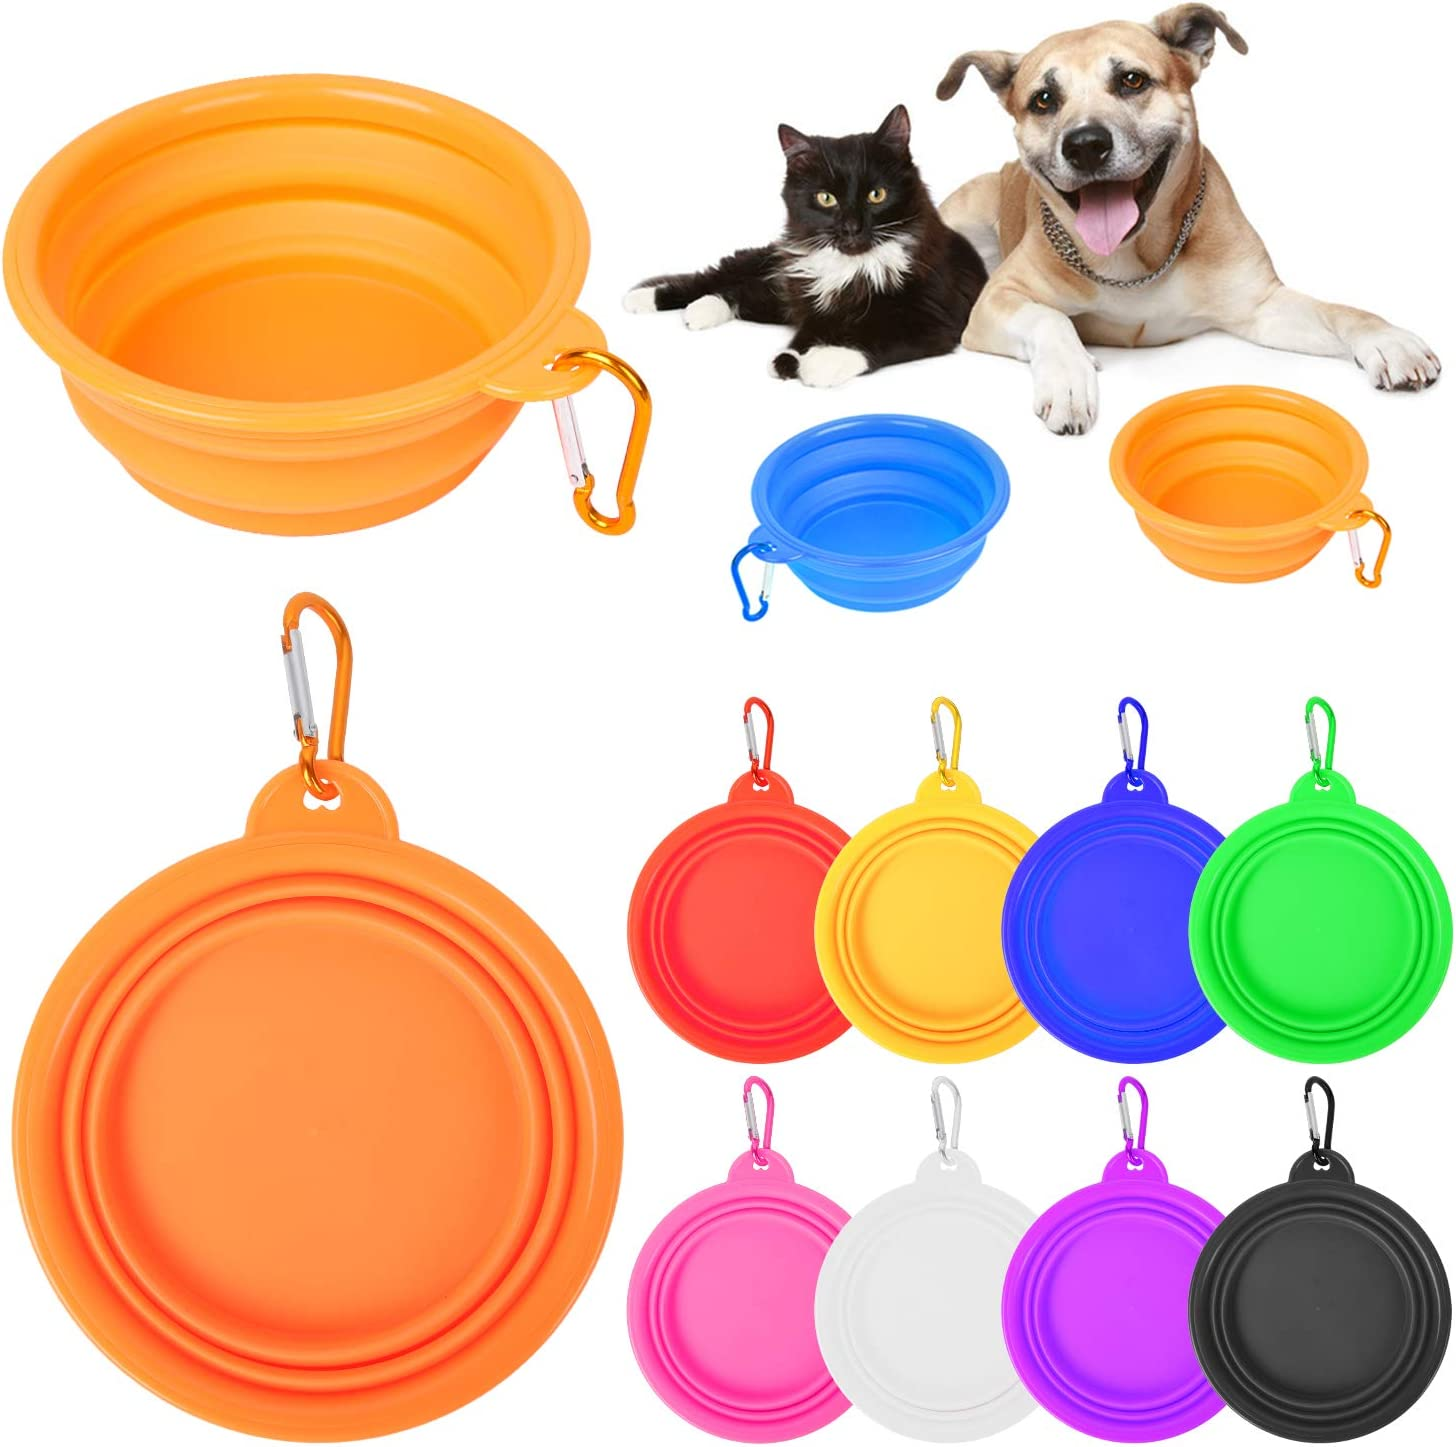 PROLOSO 9 Pcs Collapsible Dog Bowl Foldable Expandable Silicone Cup Dish for Pet Cat Food Water Feeding Portable Travel Bowl with Carabiner